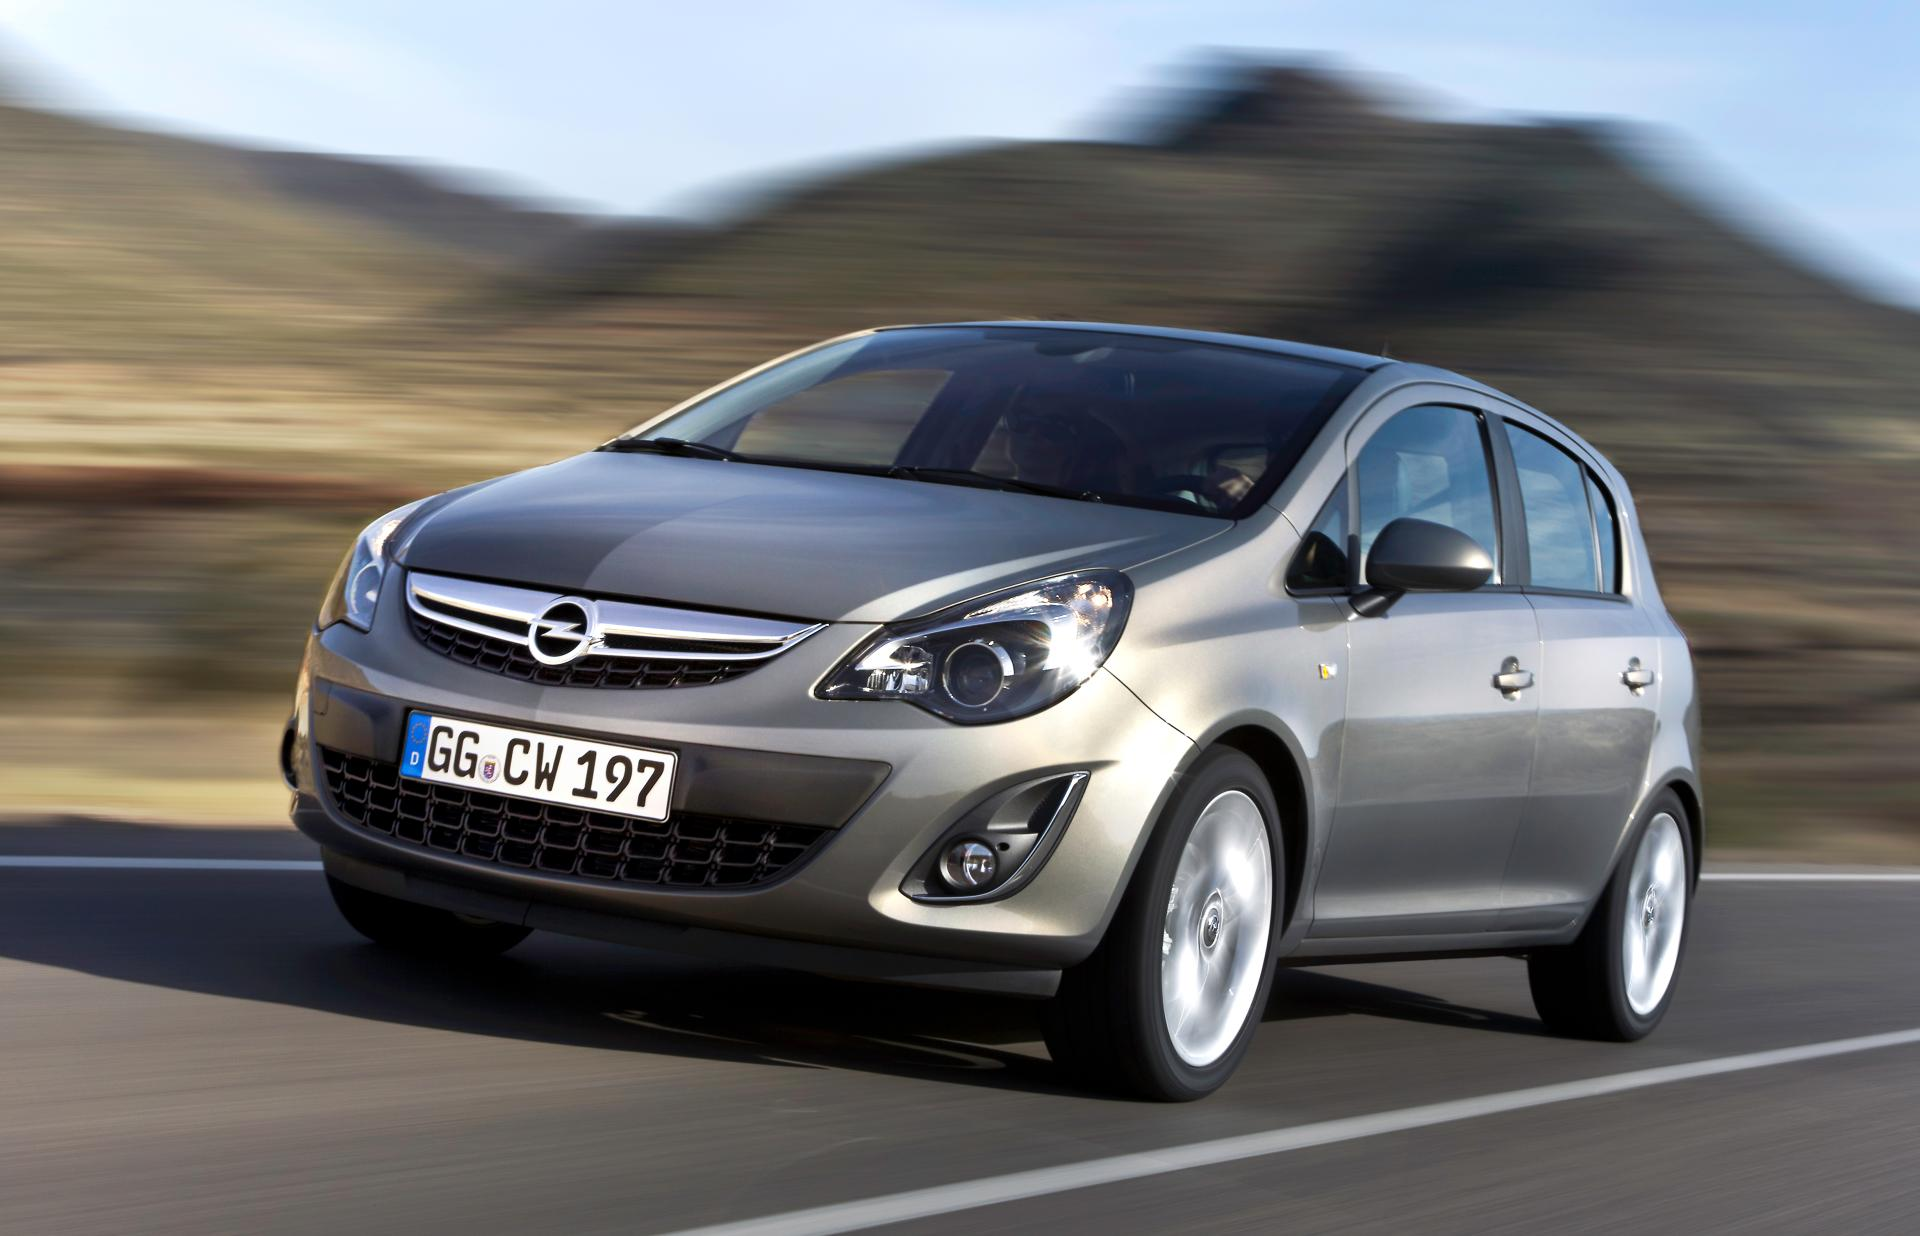 opel corsa information image credit opel gm corp designed and manufactured Wallpapers Download